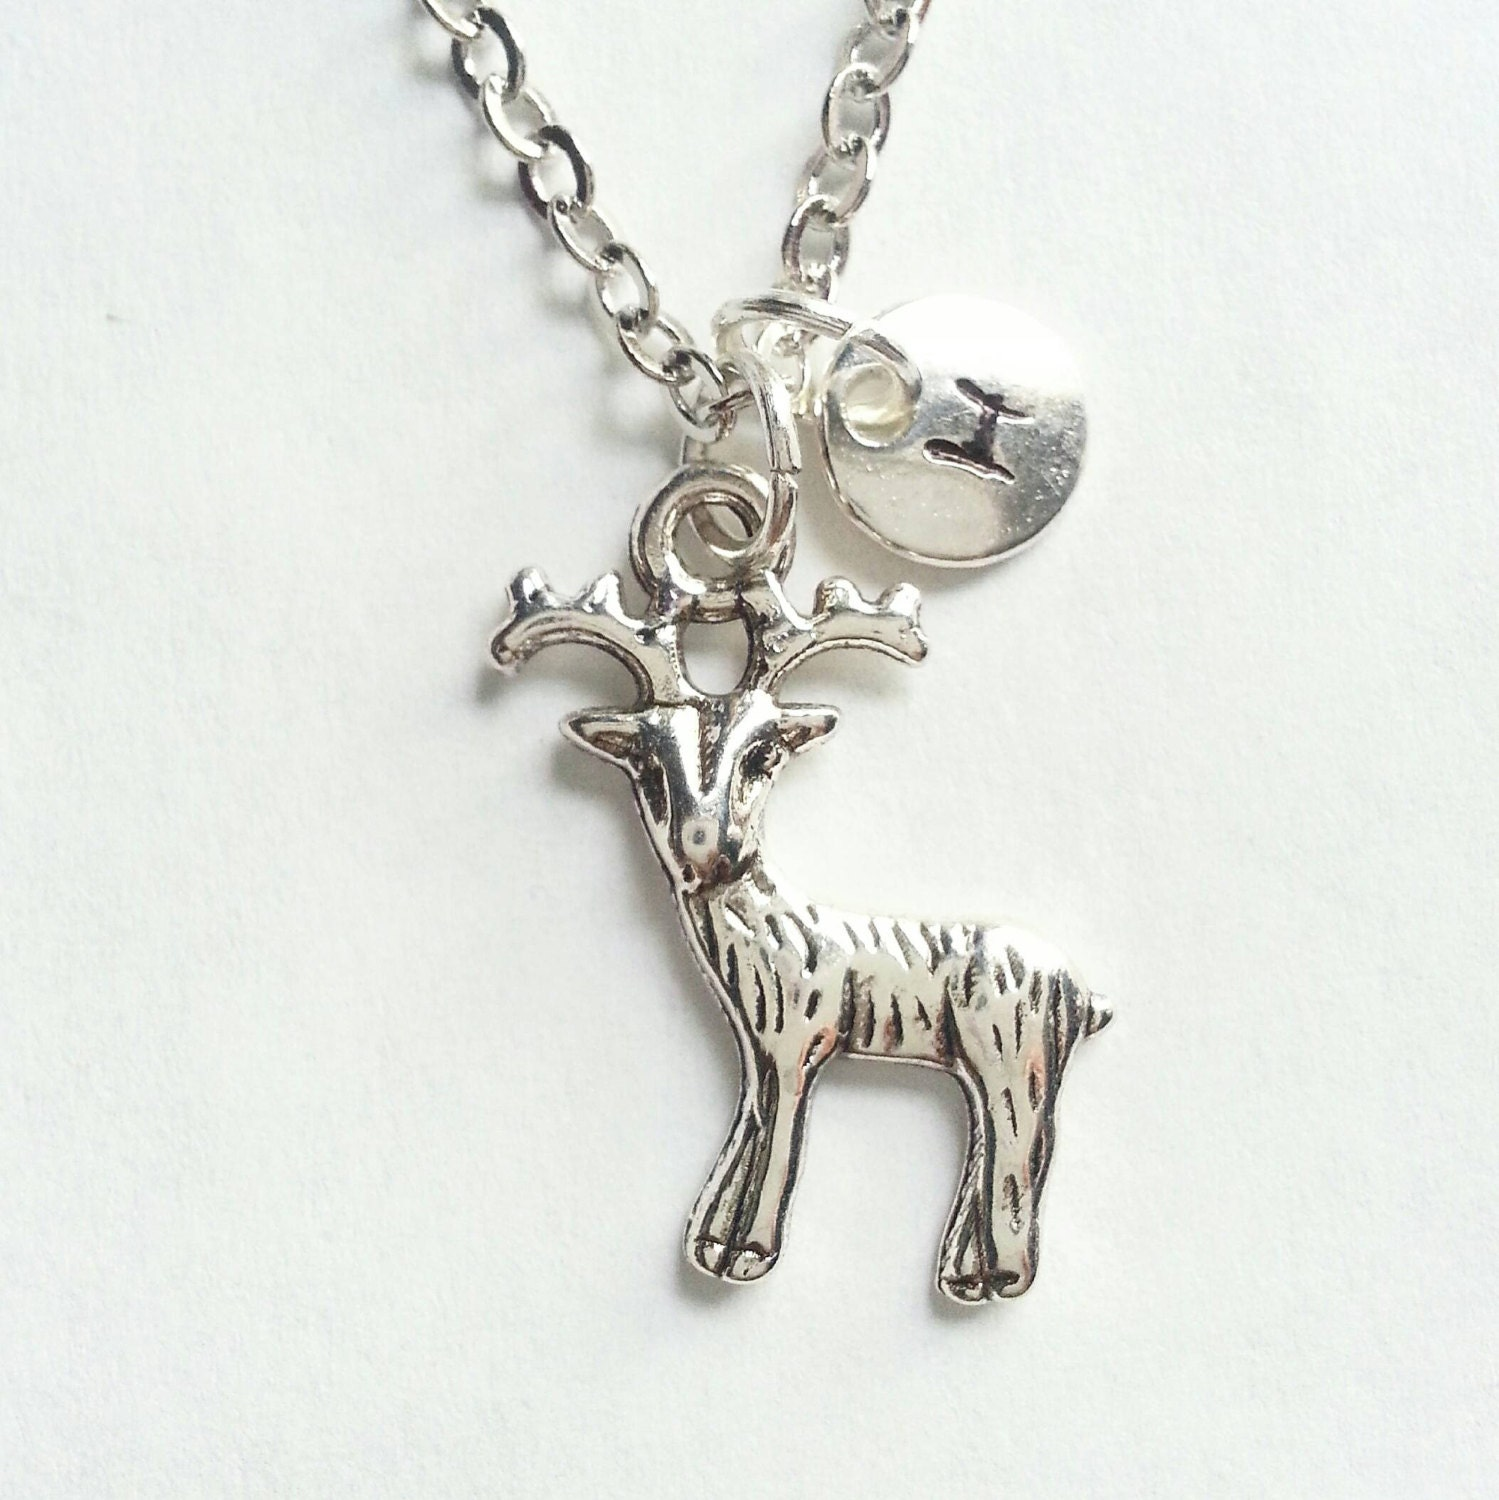 monogrammed personalized silver hp inspired patronus charm